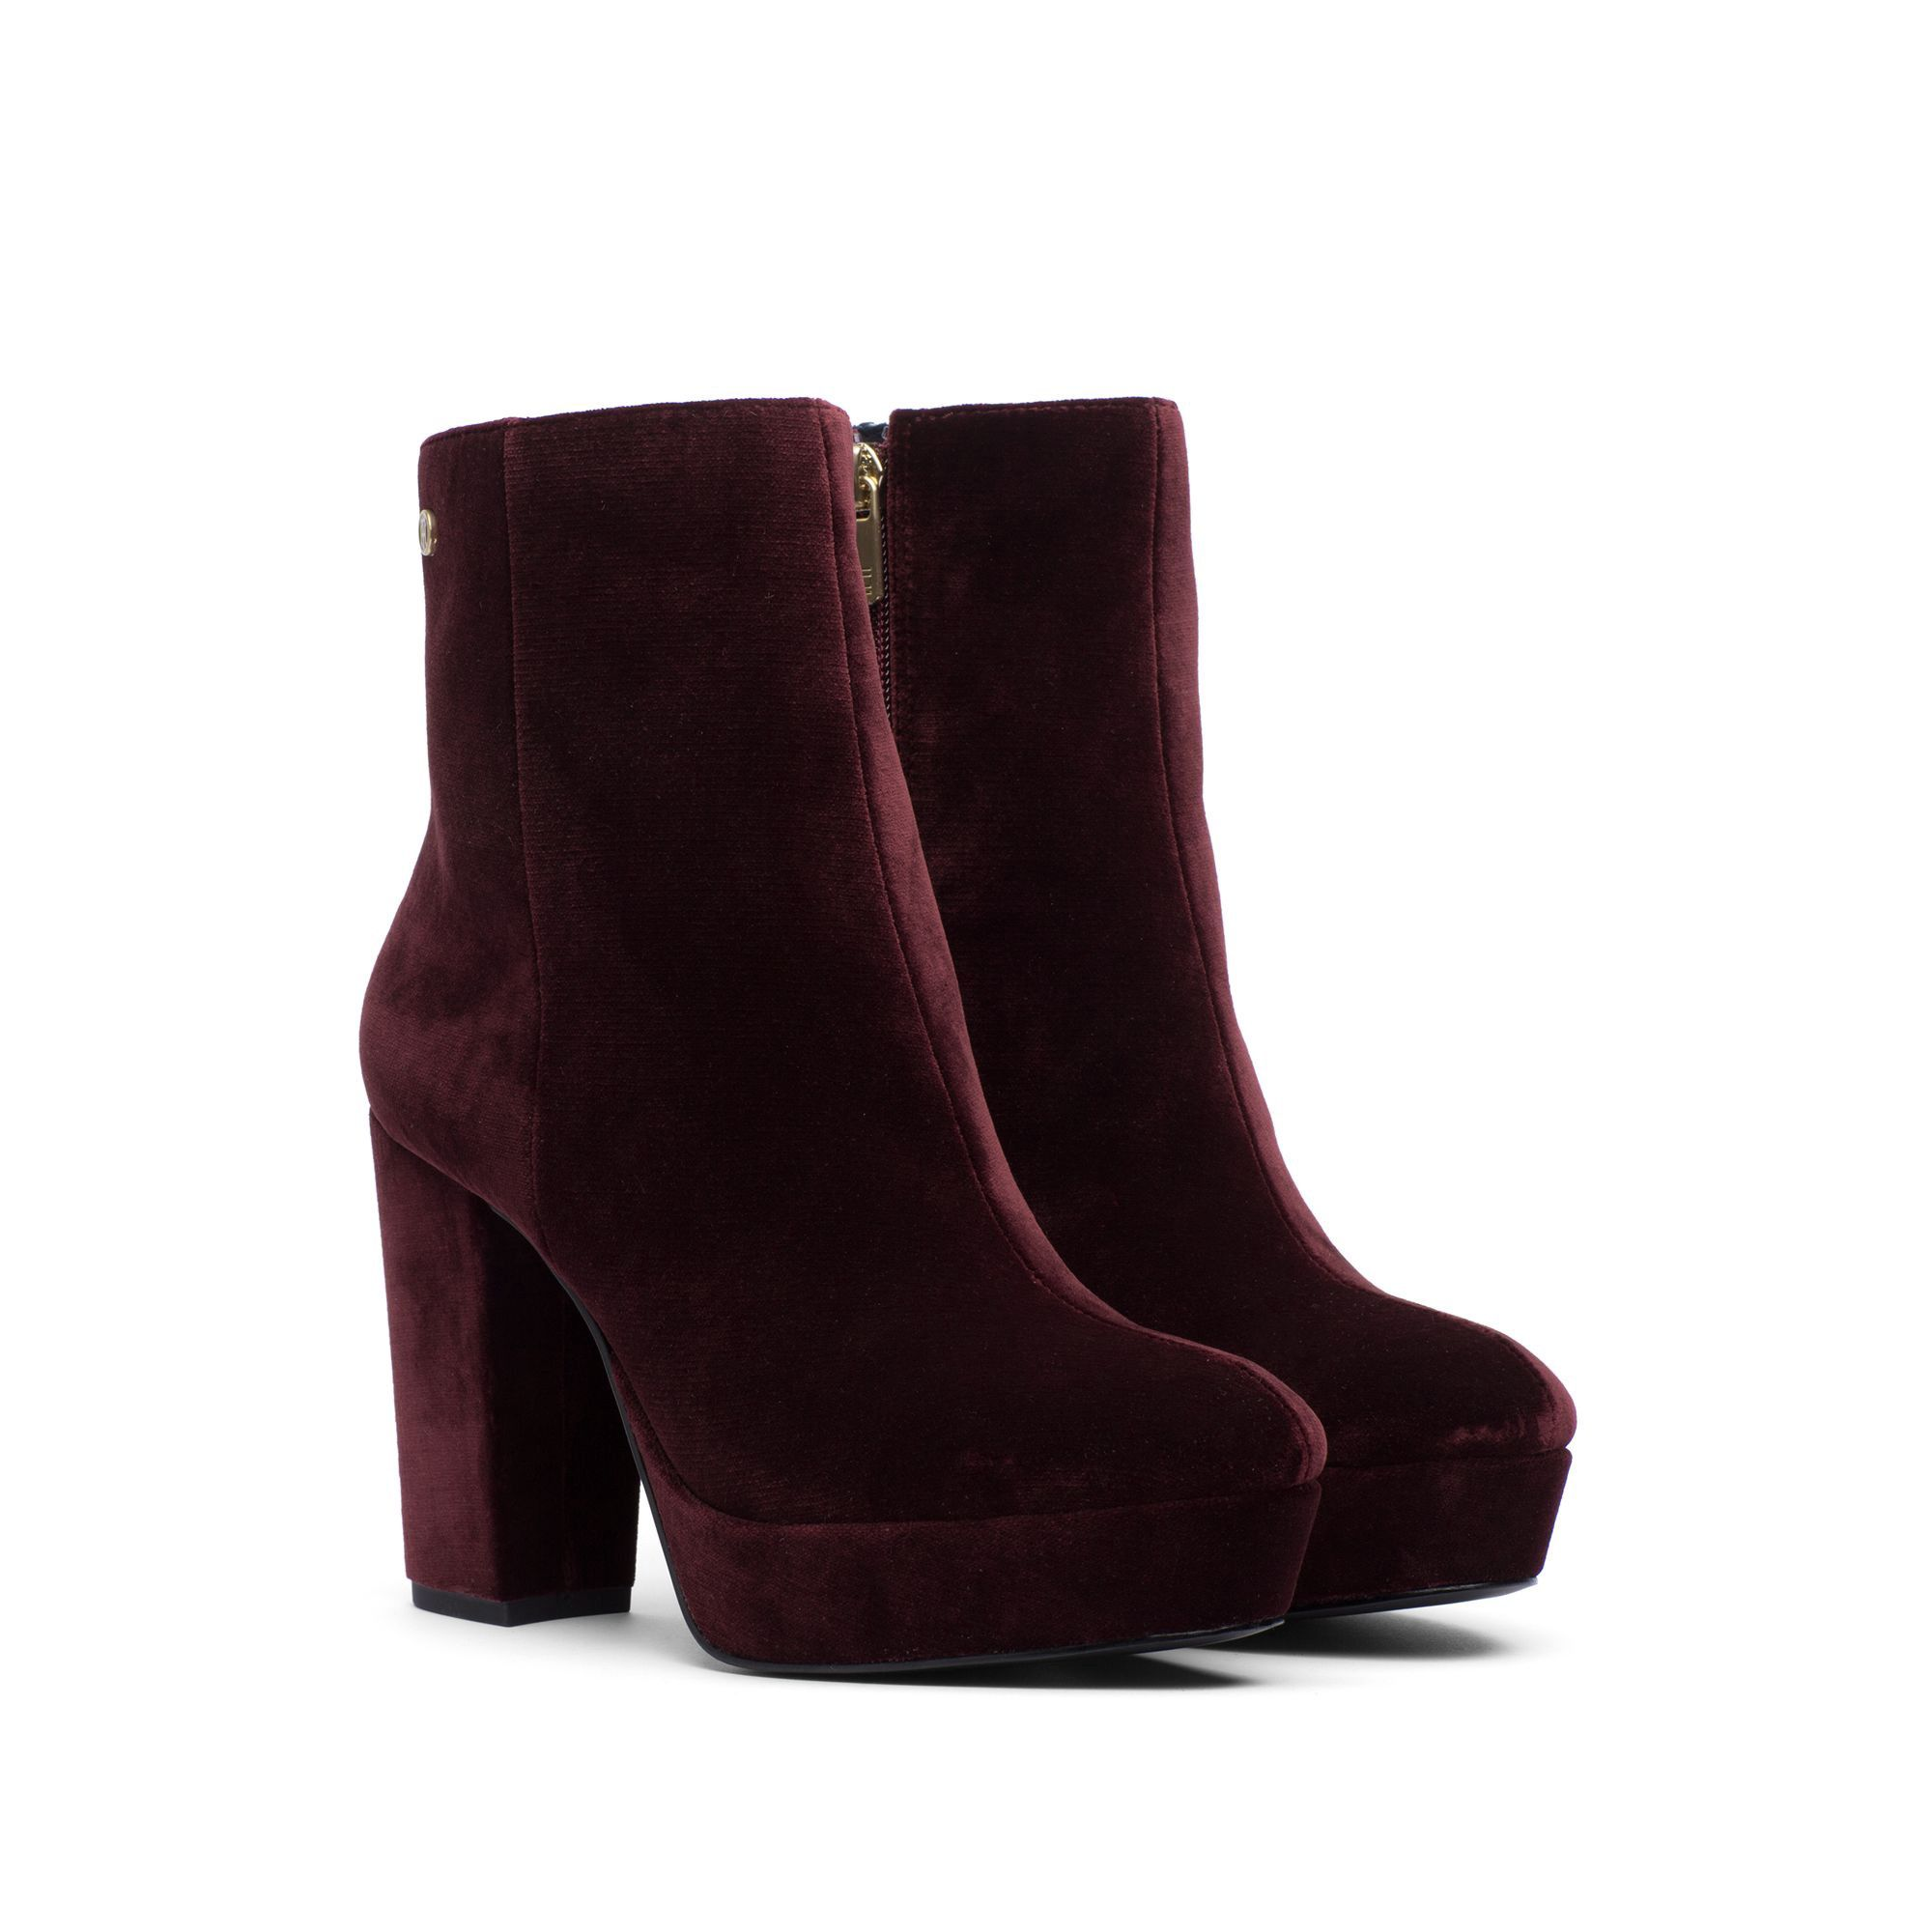 3383599bbb8 TOMMY HILFIGER VELVET BLOCK HEELED BOOT - DECADENT CHOCOLATE.  tommyhilfiger   shoes